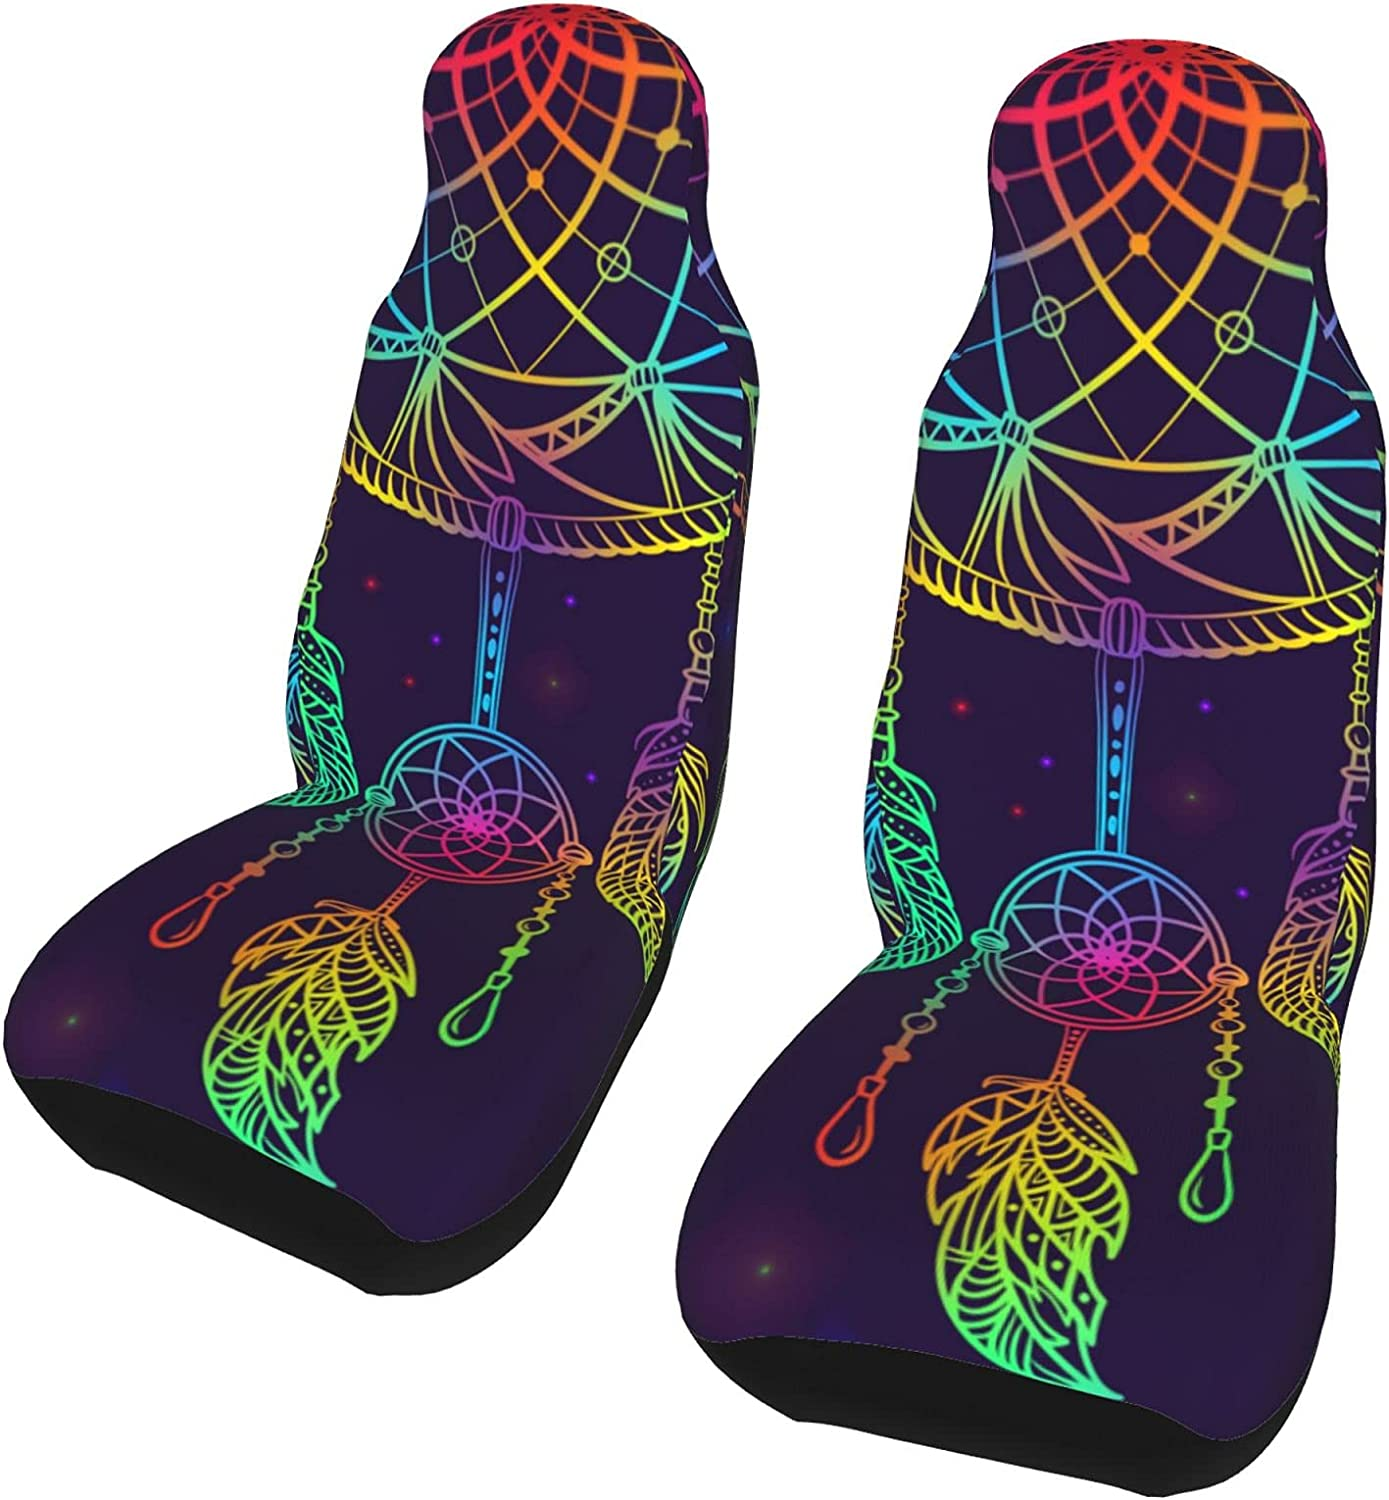 Ranking TOP9 Inrubie Hand Ranking integrated 1st place Drawn Colorful Dream Catcher Pcs Covers Car Seat 2